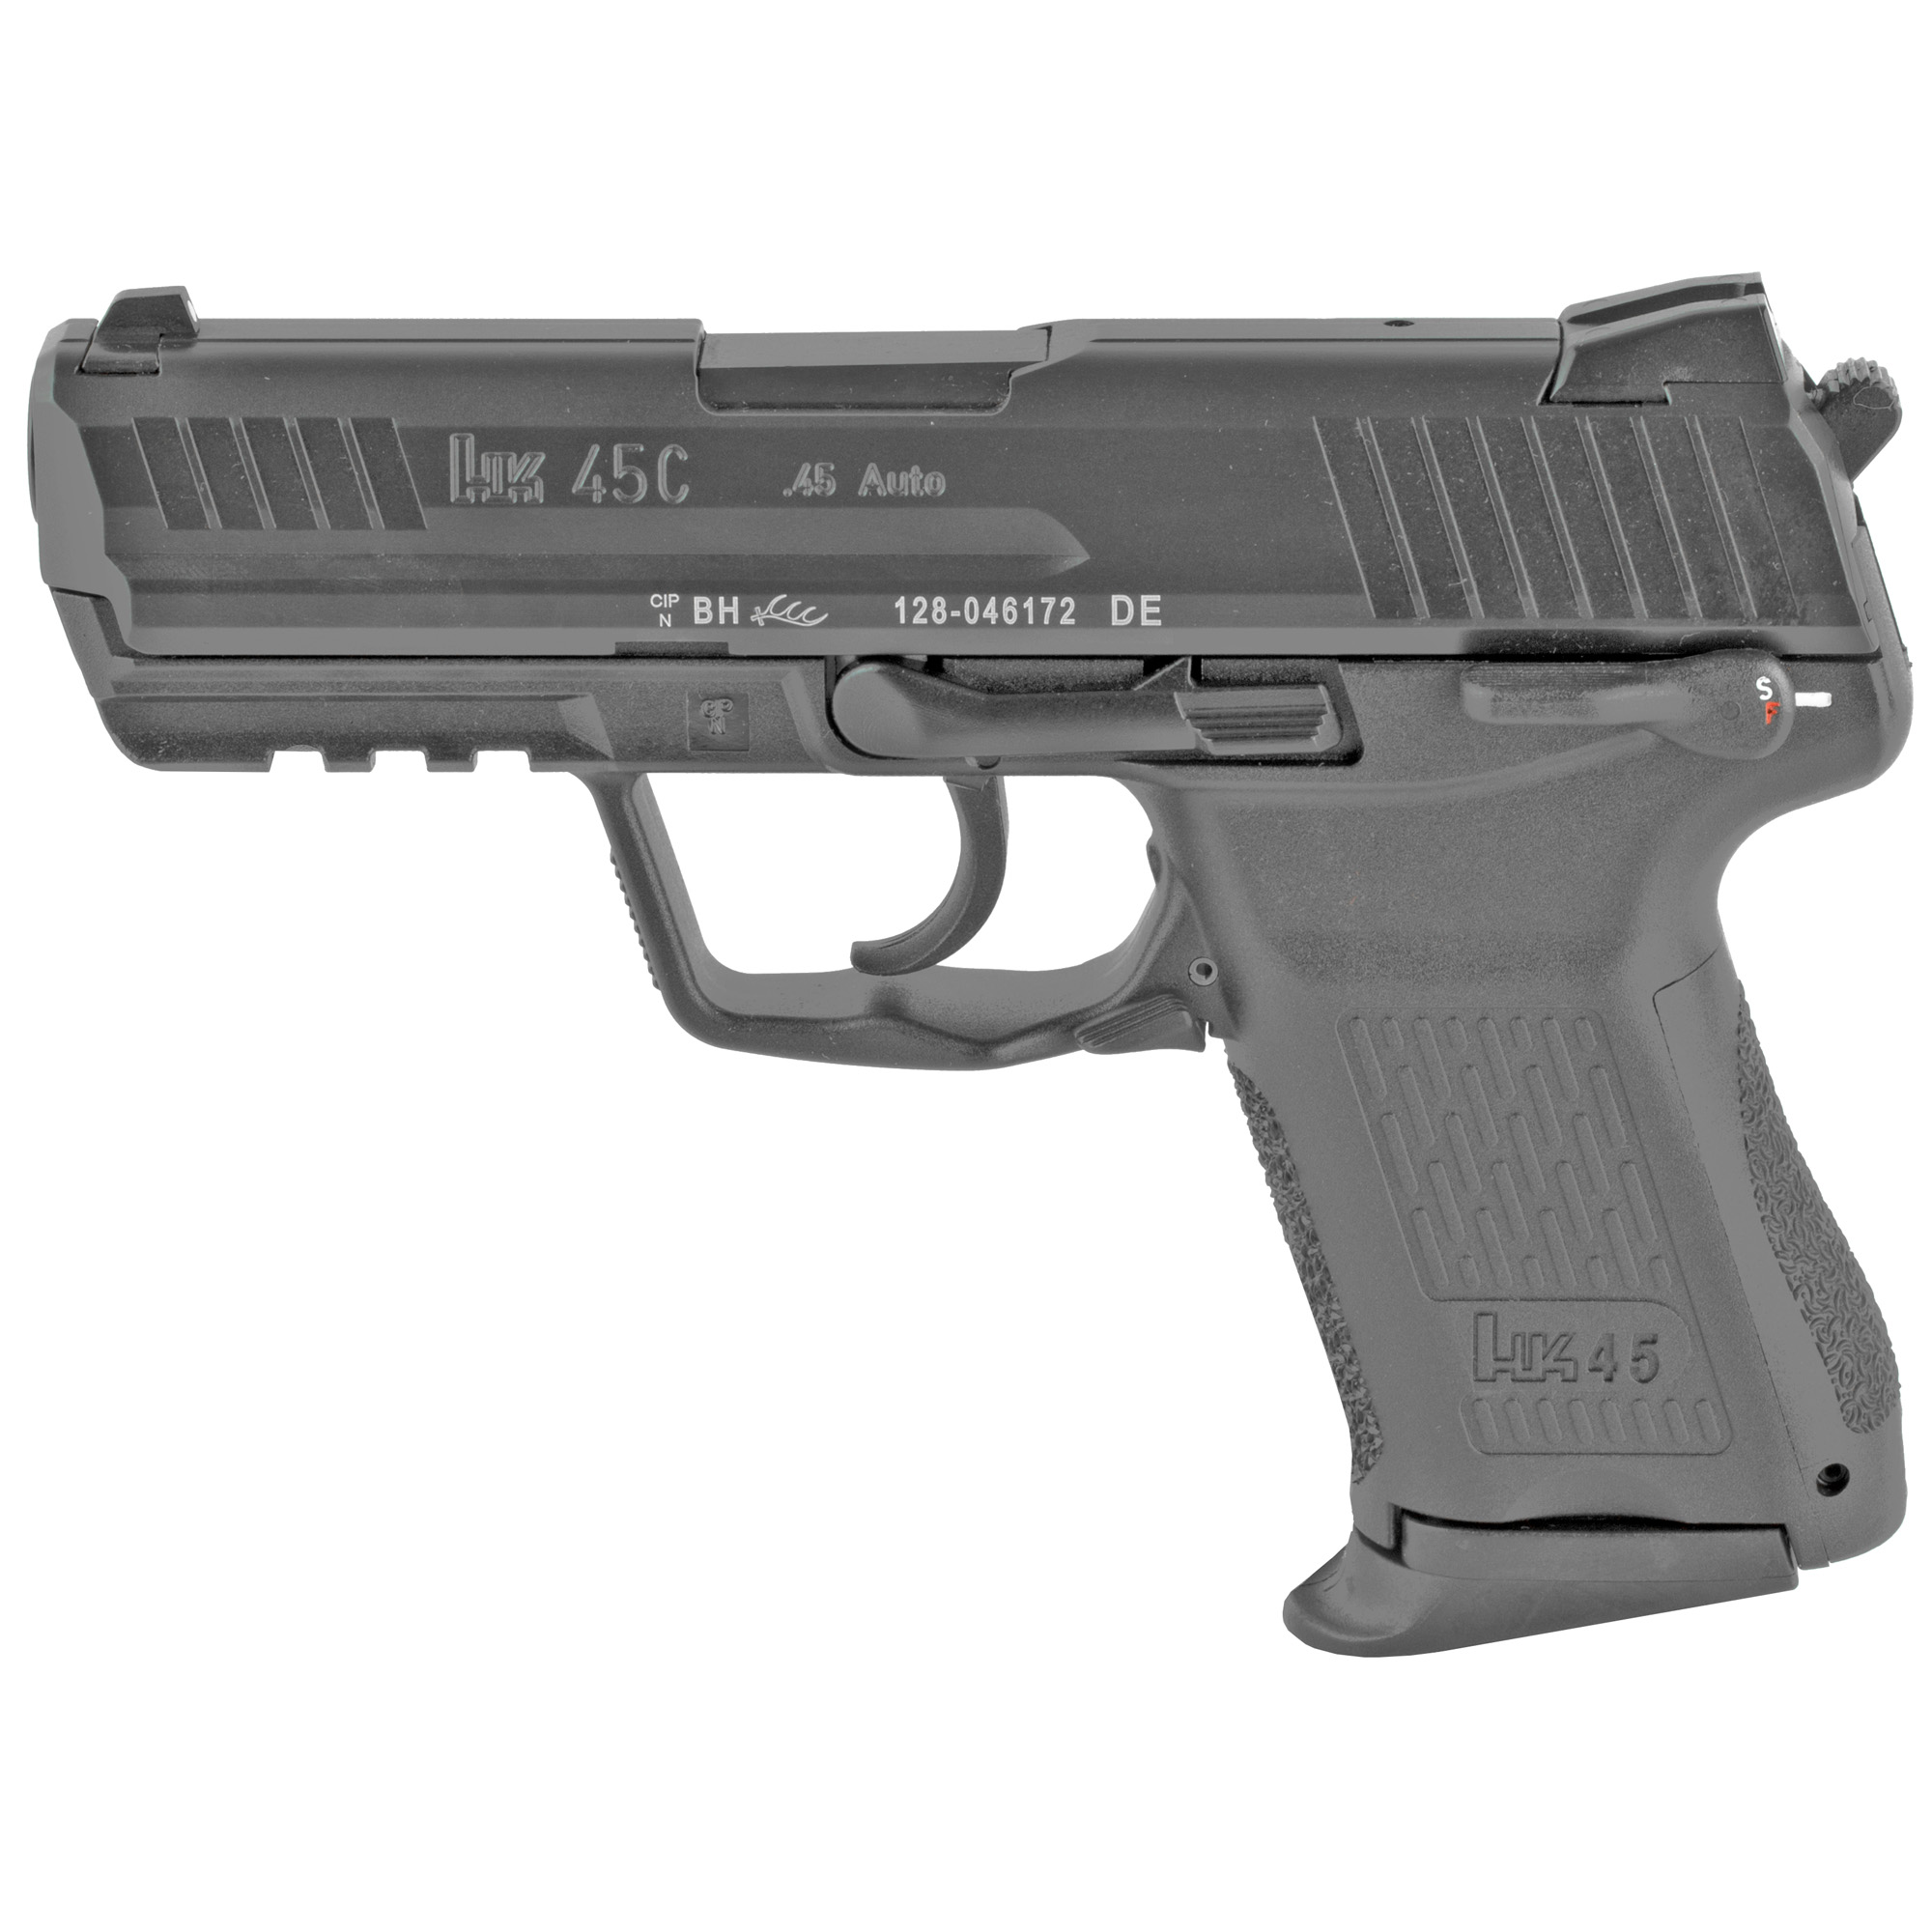 """Smaller in length and height than the standard HK45"""" the HK45 Compact (HK45C) uses a slim-line grip profile"""" otherwise it is nearly identical in features to the full-size HK45. Like the HK45"""" the HK45 Compact was developed as a possible candidate for the Joint Combat Pistol (JCP) and Combat Pistol (CP) programs administered by the U.S. military in their search for a new service handgun."""